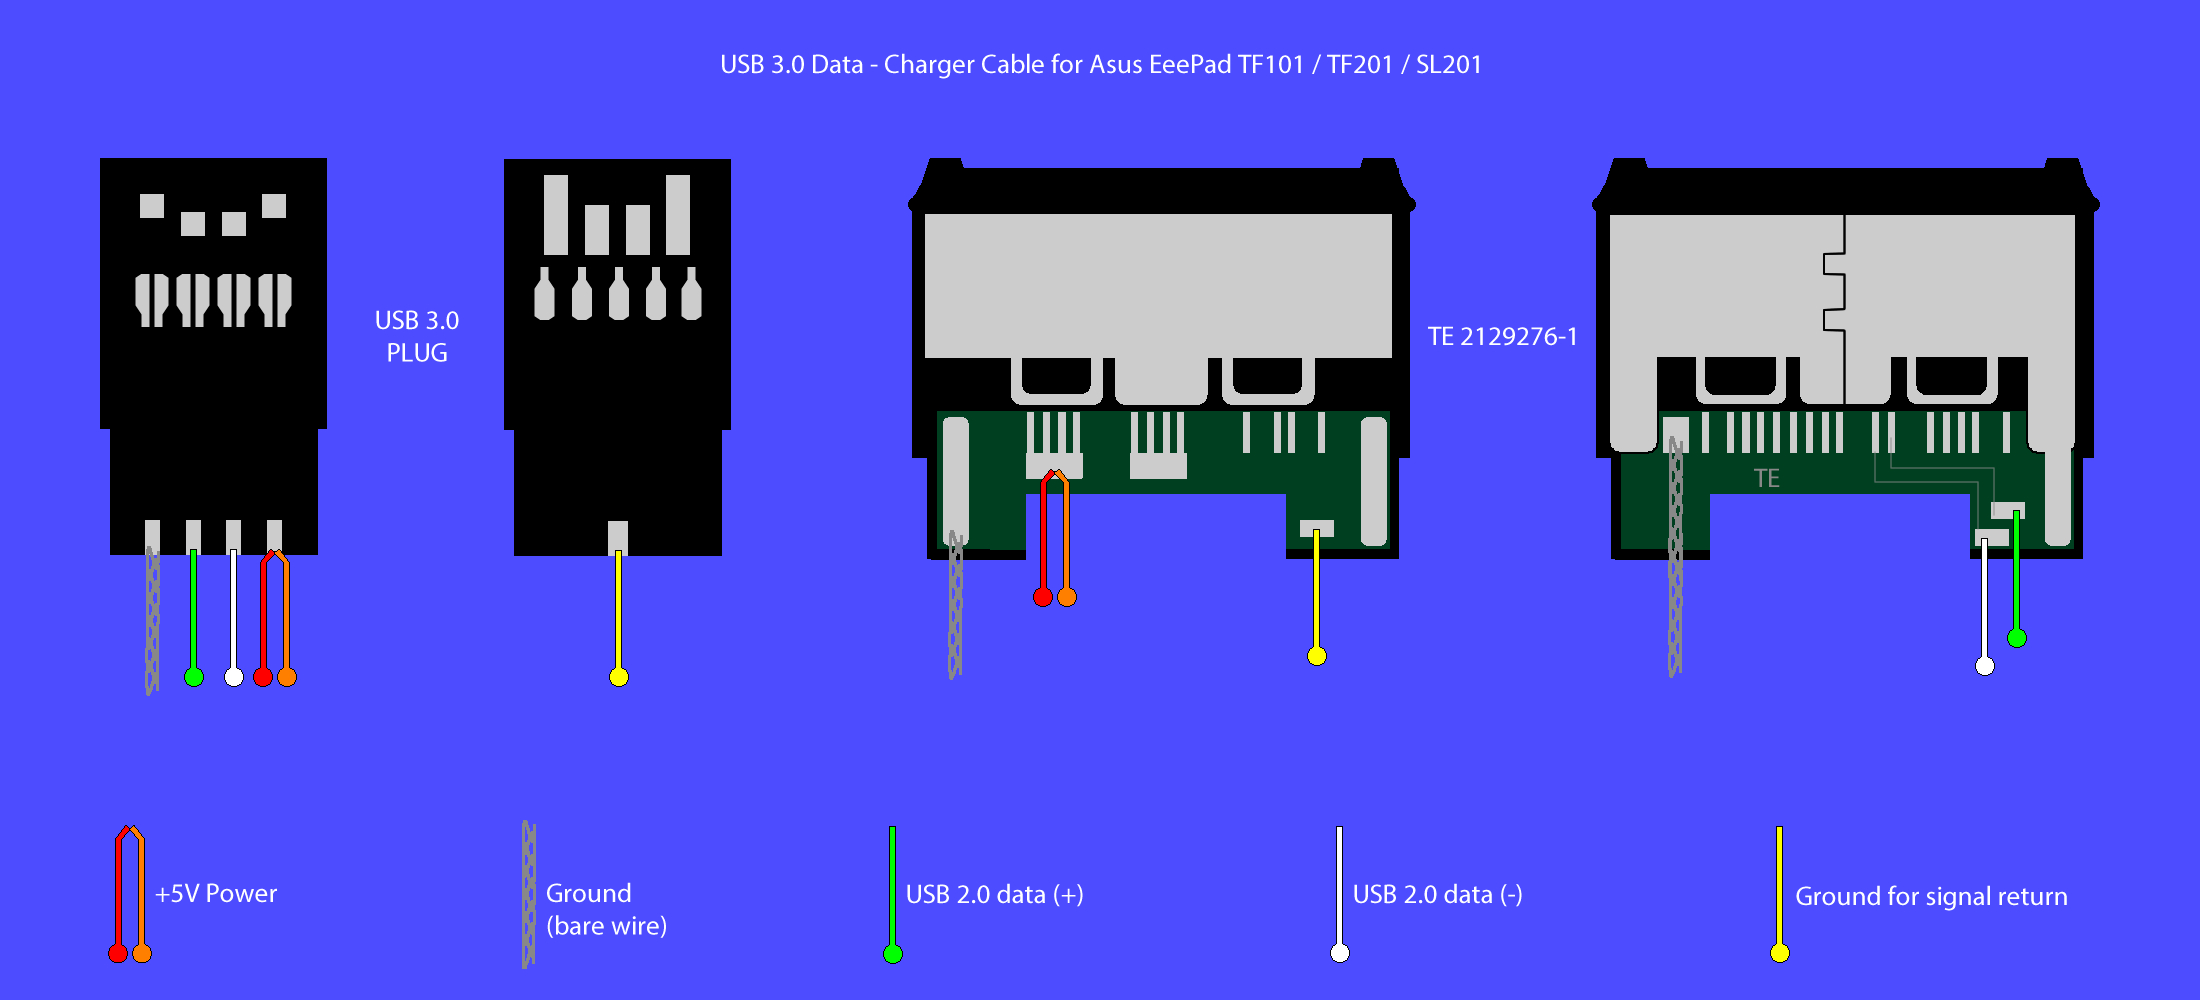 Iphone 5 Usb Charger Wiring Diagram | Wiring Diagram - Usb Charger Wiring Diagram